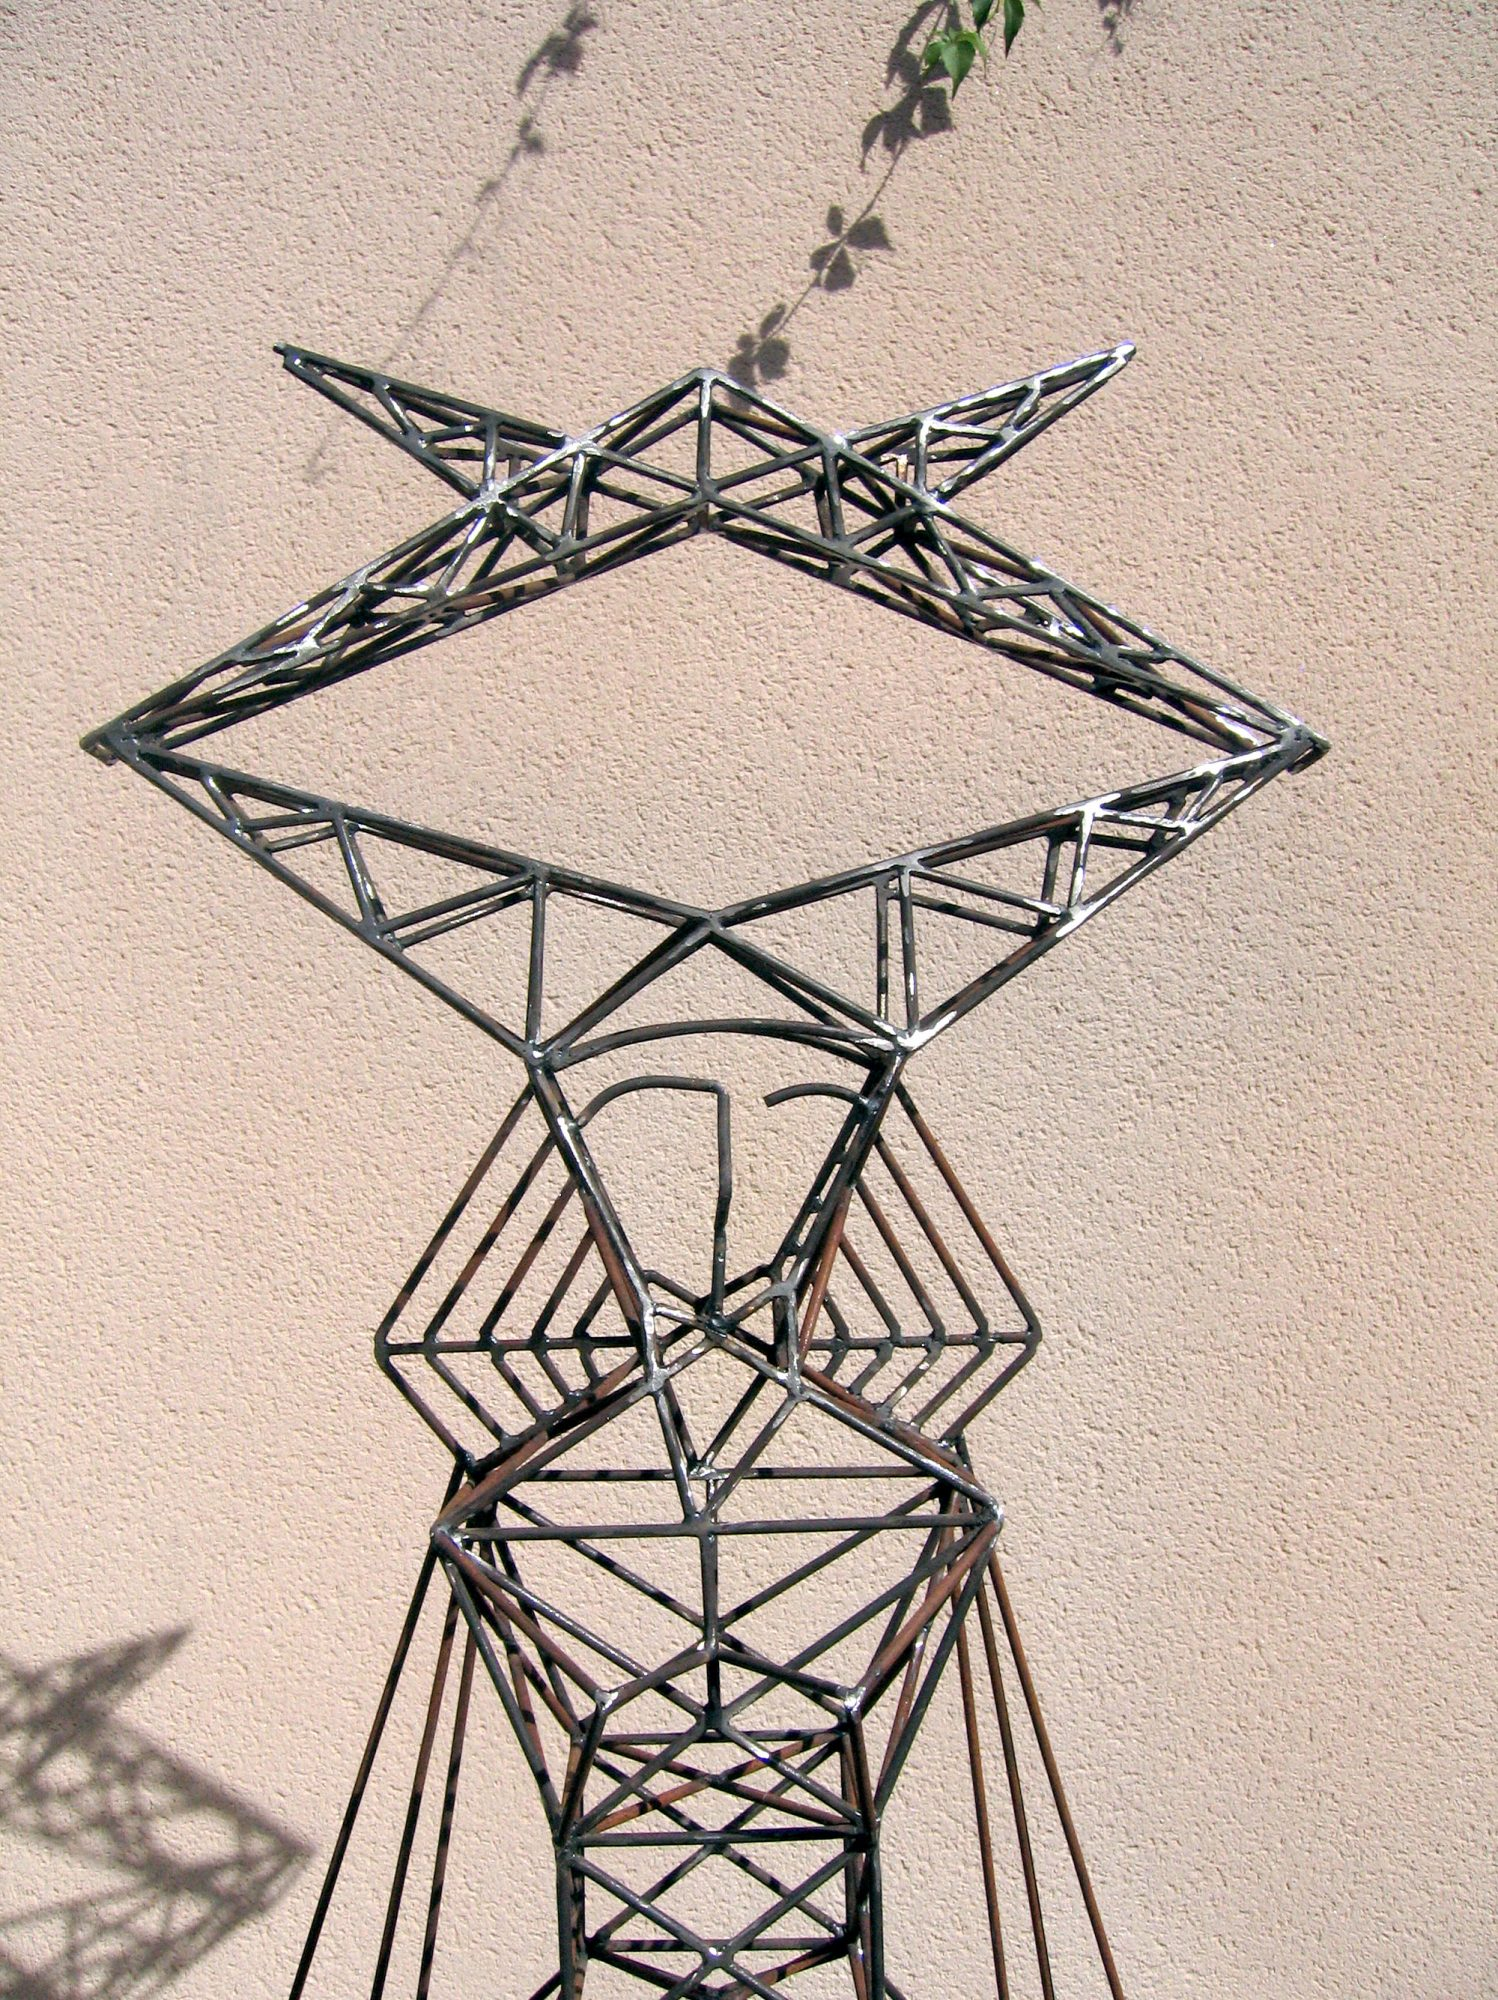 Totem, Sculpture-Pylon